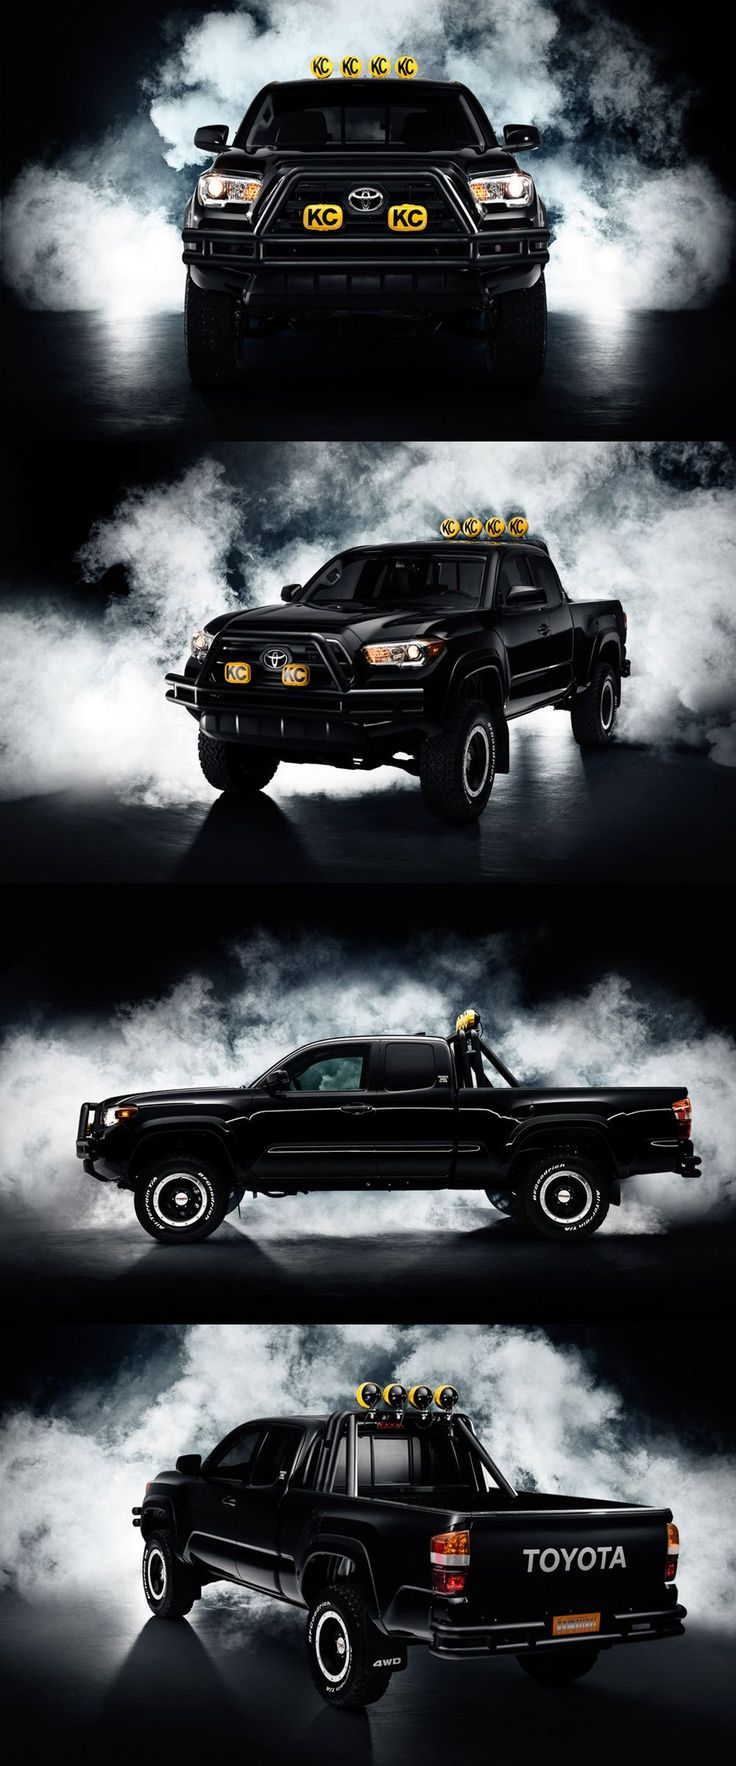 'Back to the Future' Toyota Tacoma